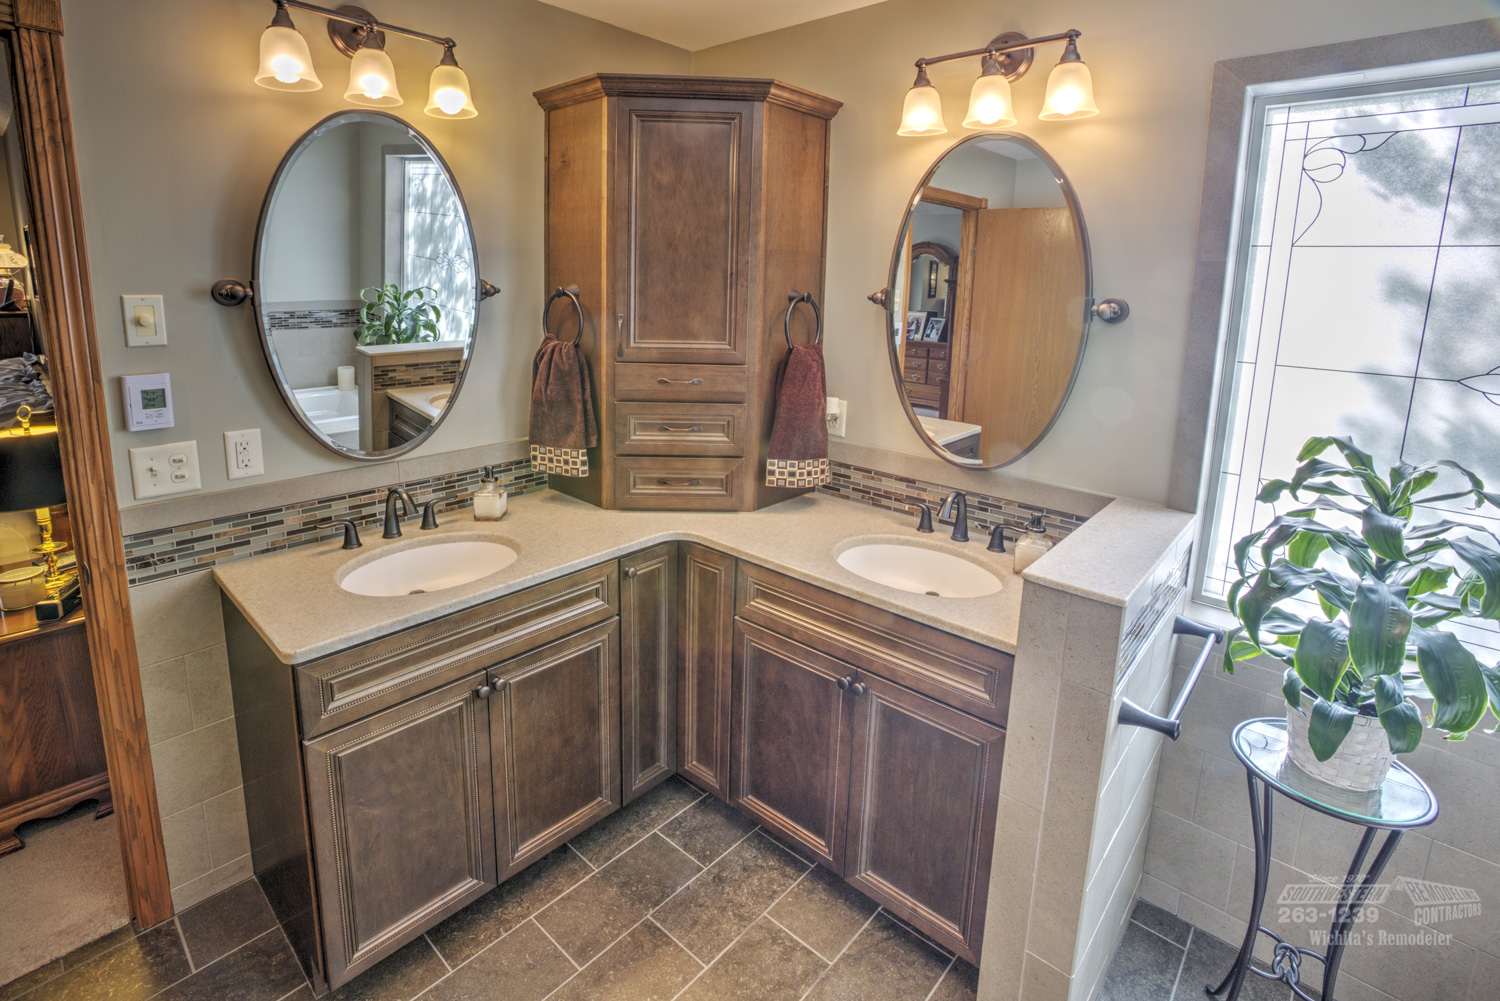 Bathroom Remodel Wichita Ks : Bathroom remodeling southwestern wichita